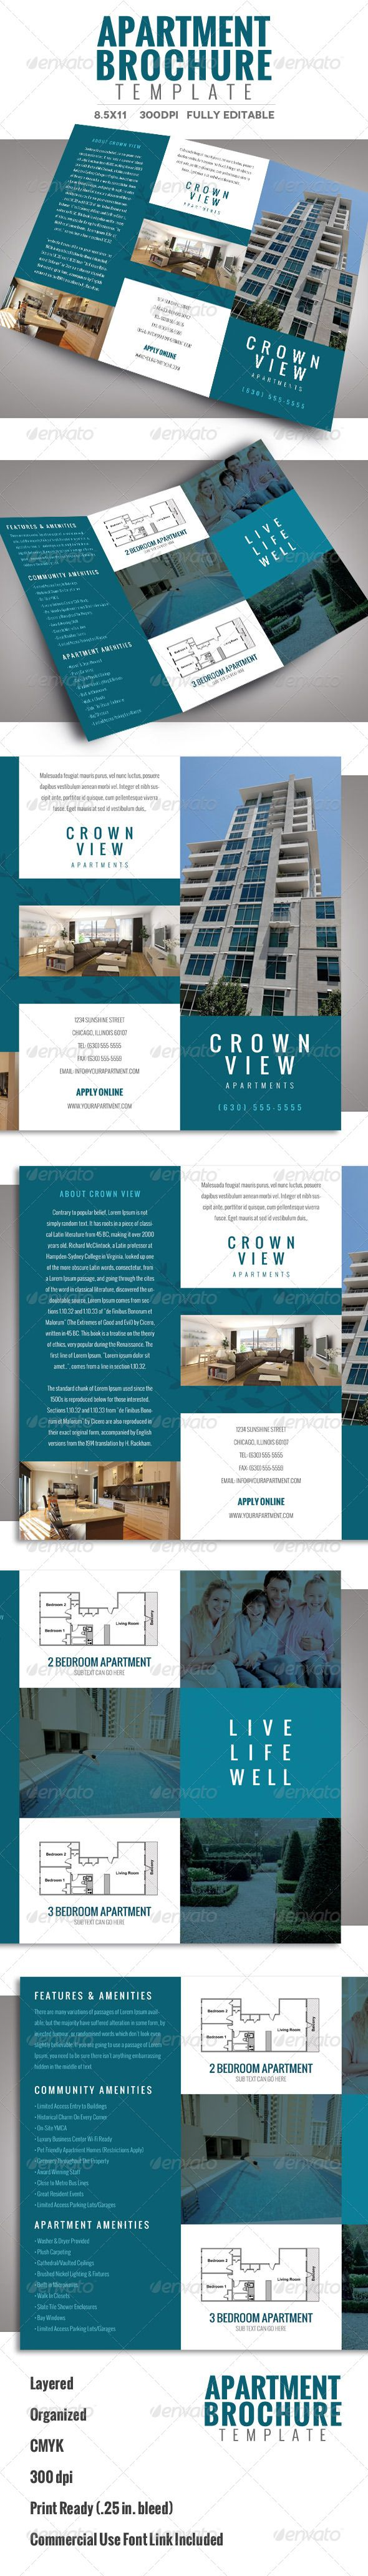 Apartment Brochure Template  Brochure Template Brochures And